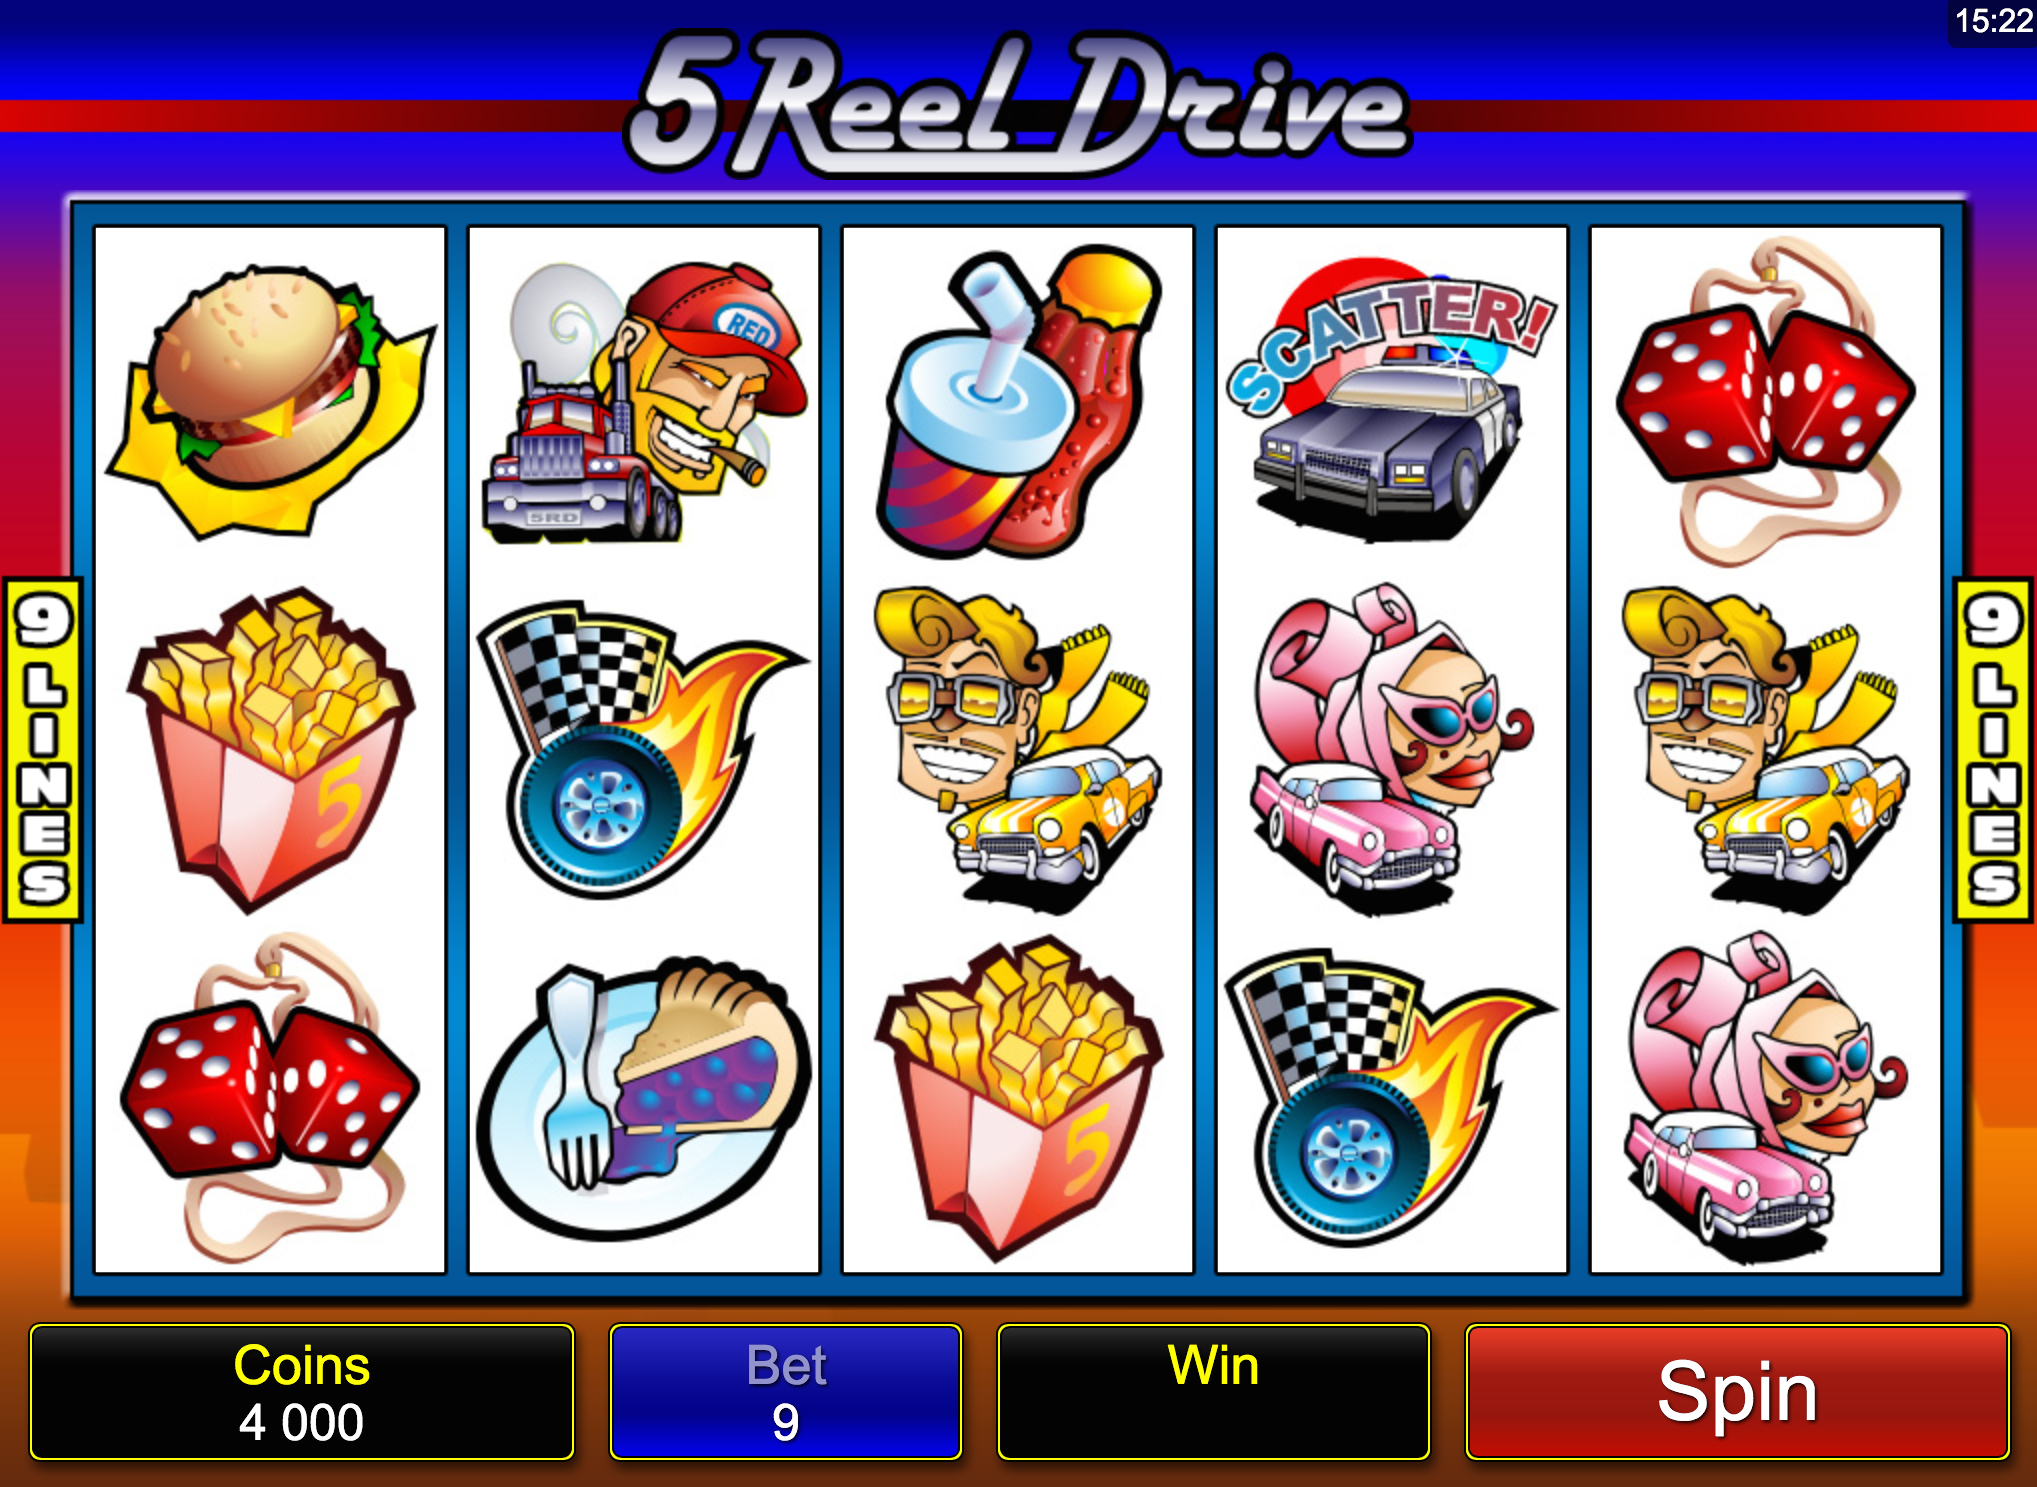 5 reel drive screenshot